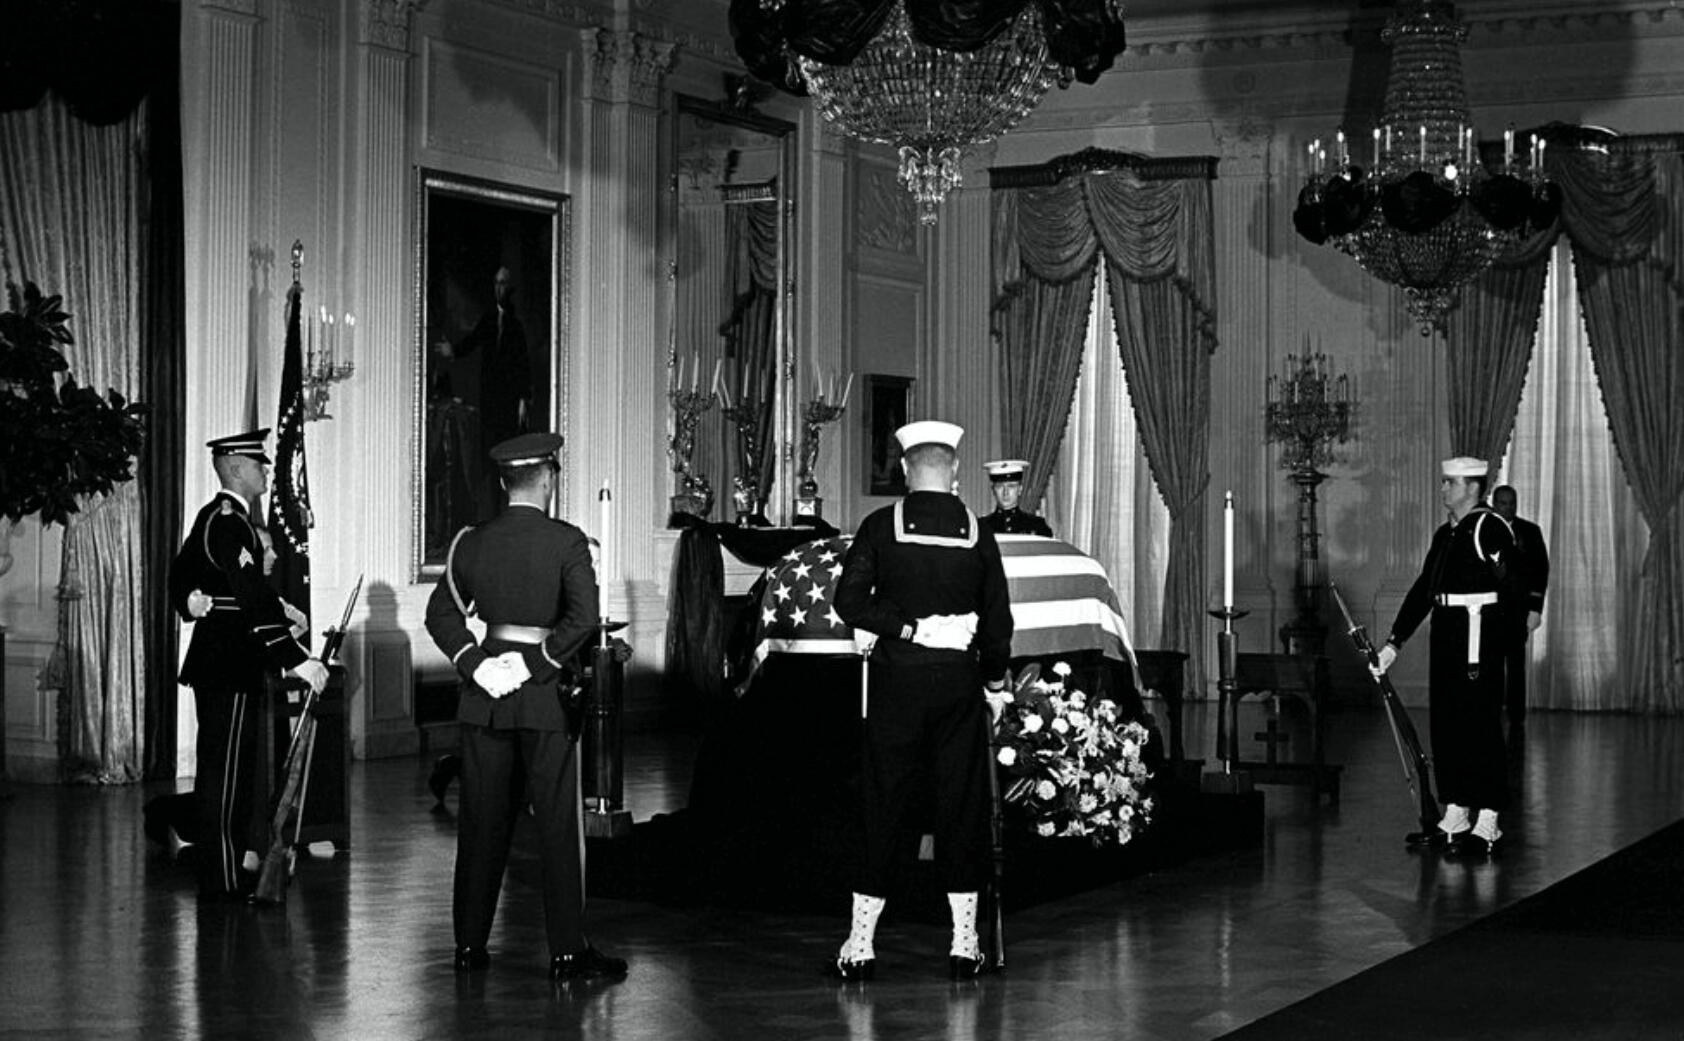 RT @BeschlossDC: East Room, White House, 50 years ago today: #NARA http://t.co/UjvoMjbSea